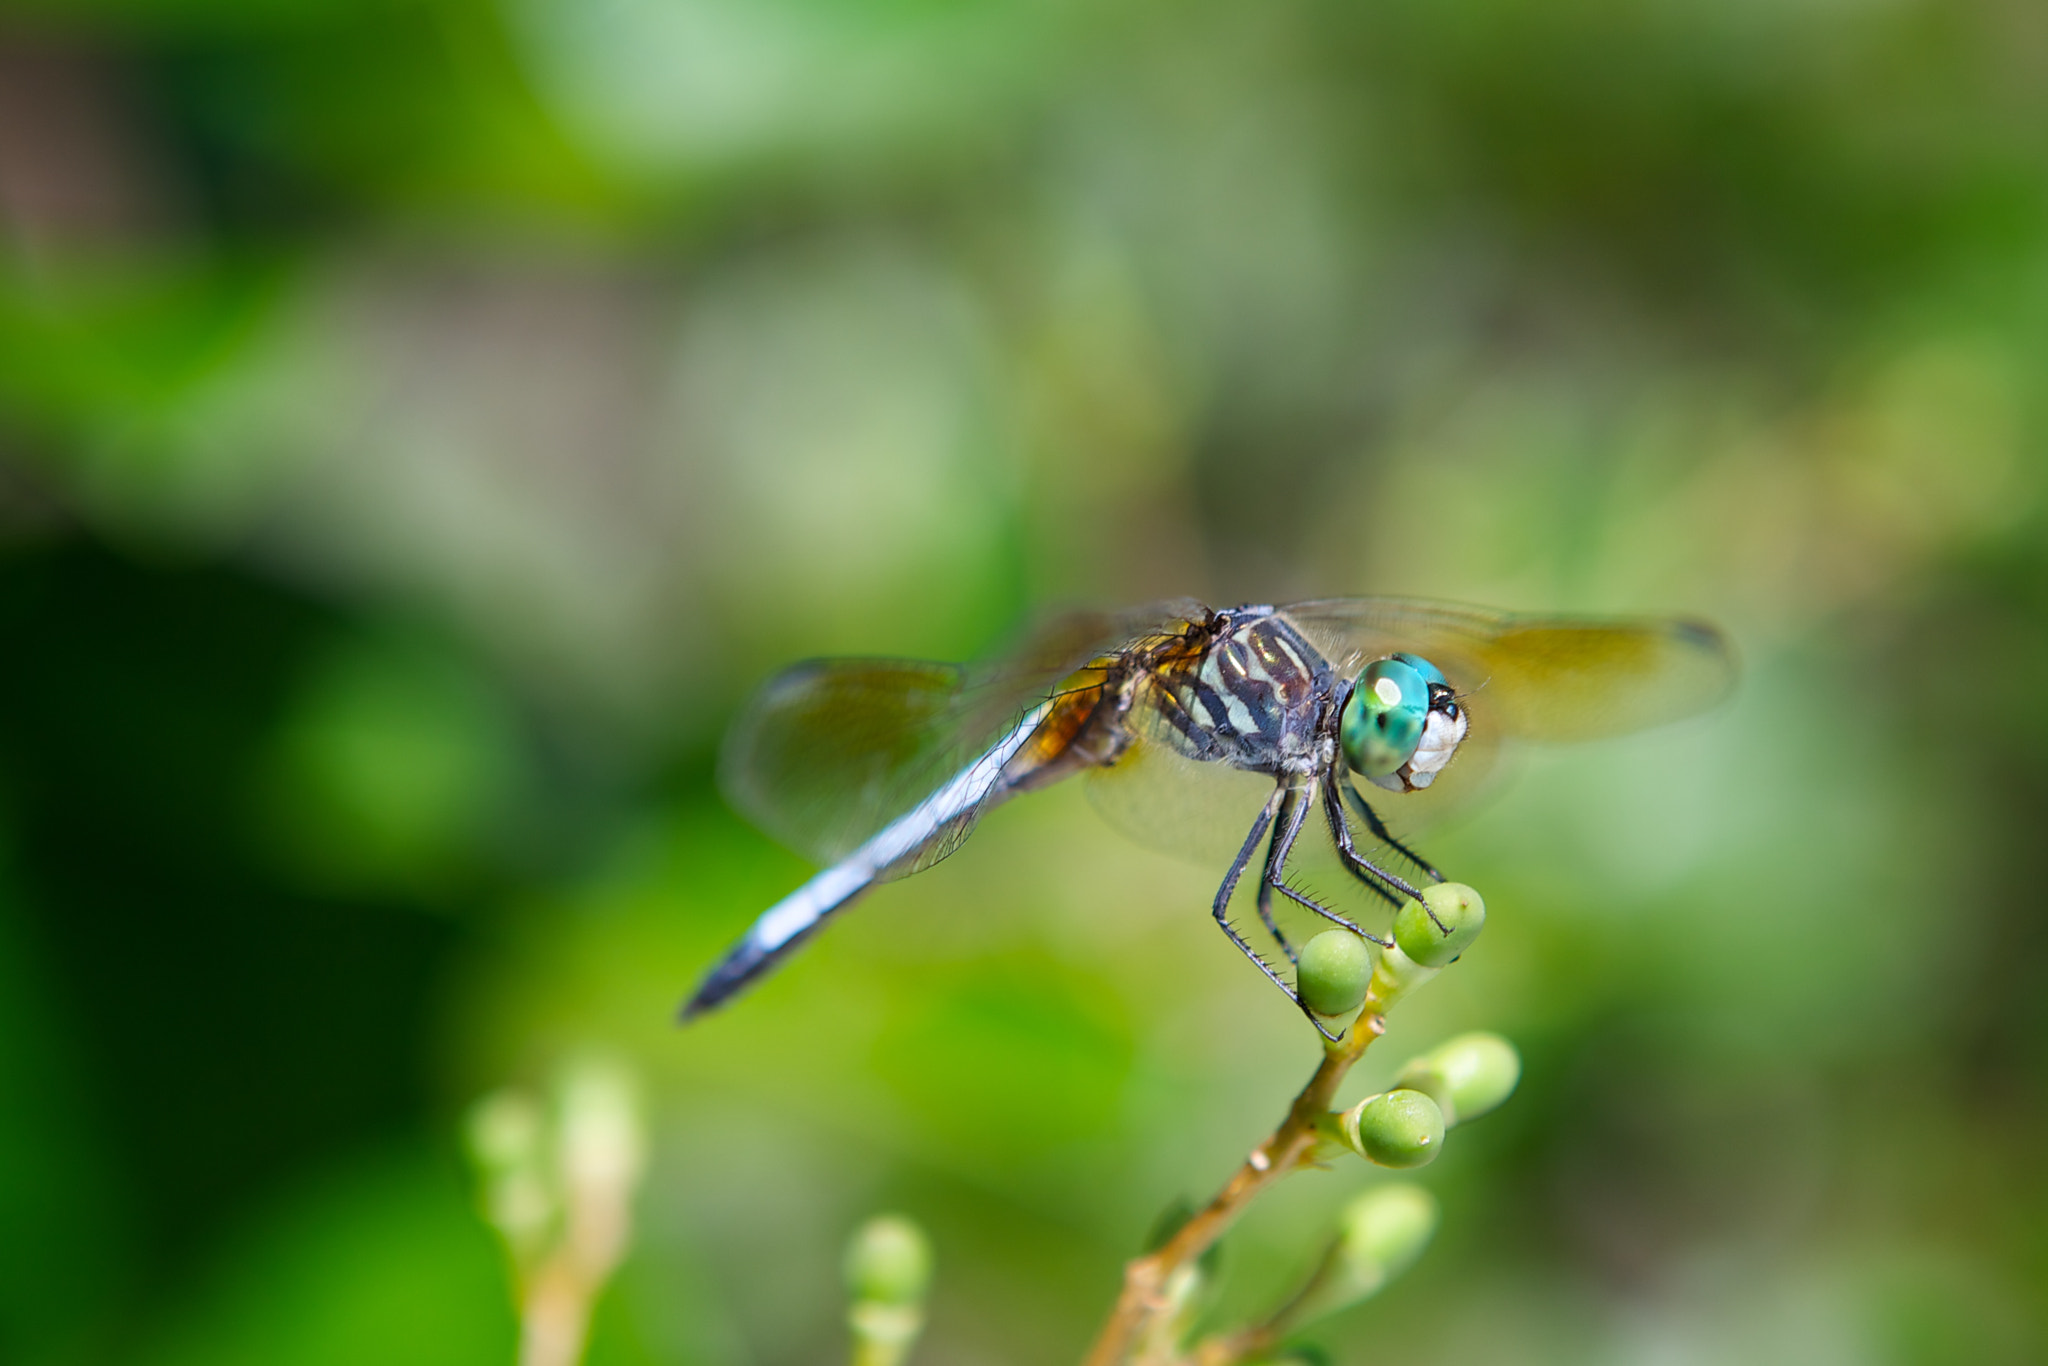 Photograph Dragonfly by Angel Jimenez de Luis on 500px